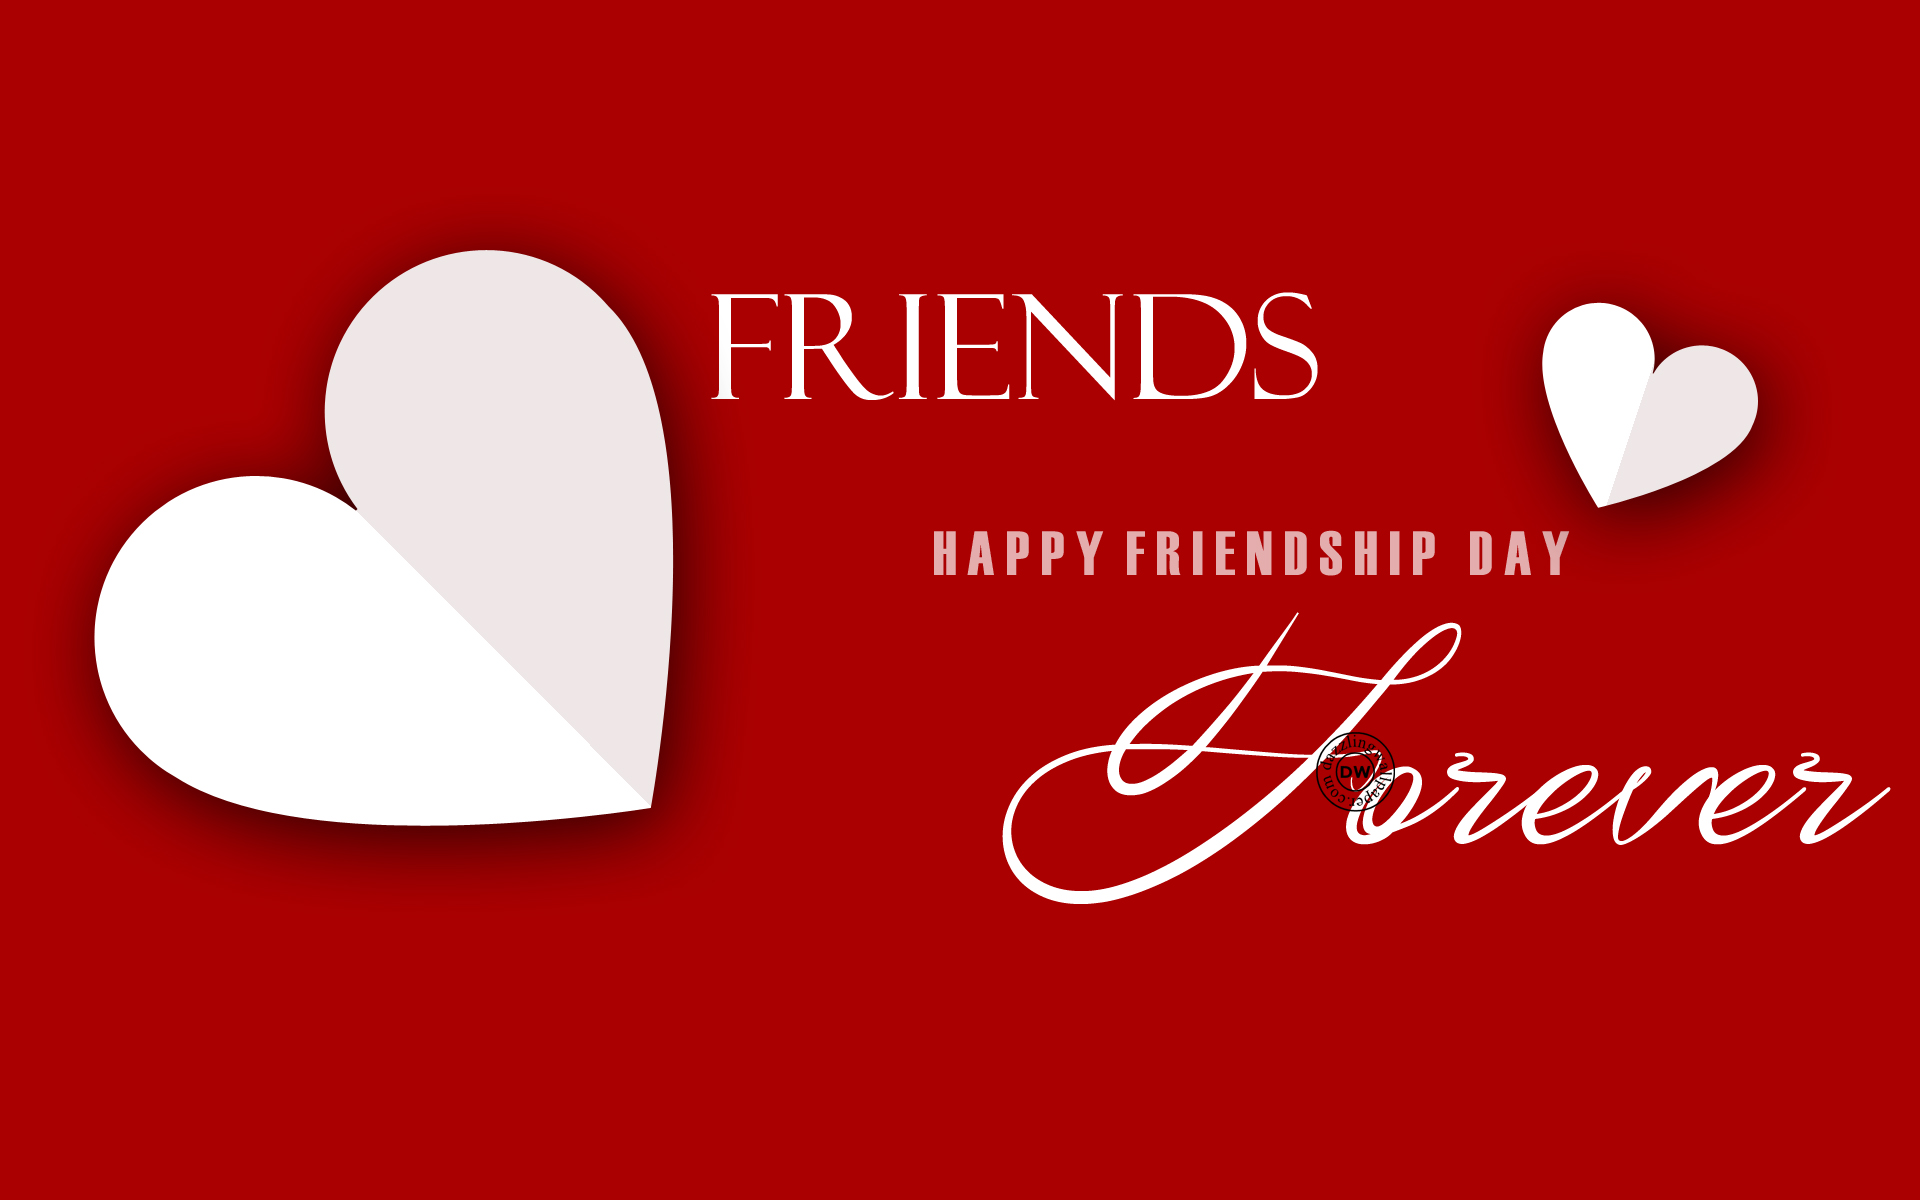 friendship-day-cute-happy-friendship-day-friends-best-friend-hd